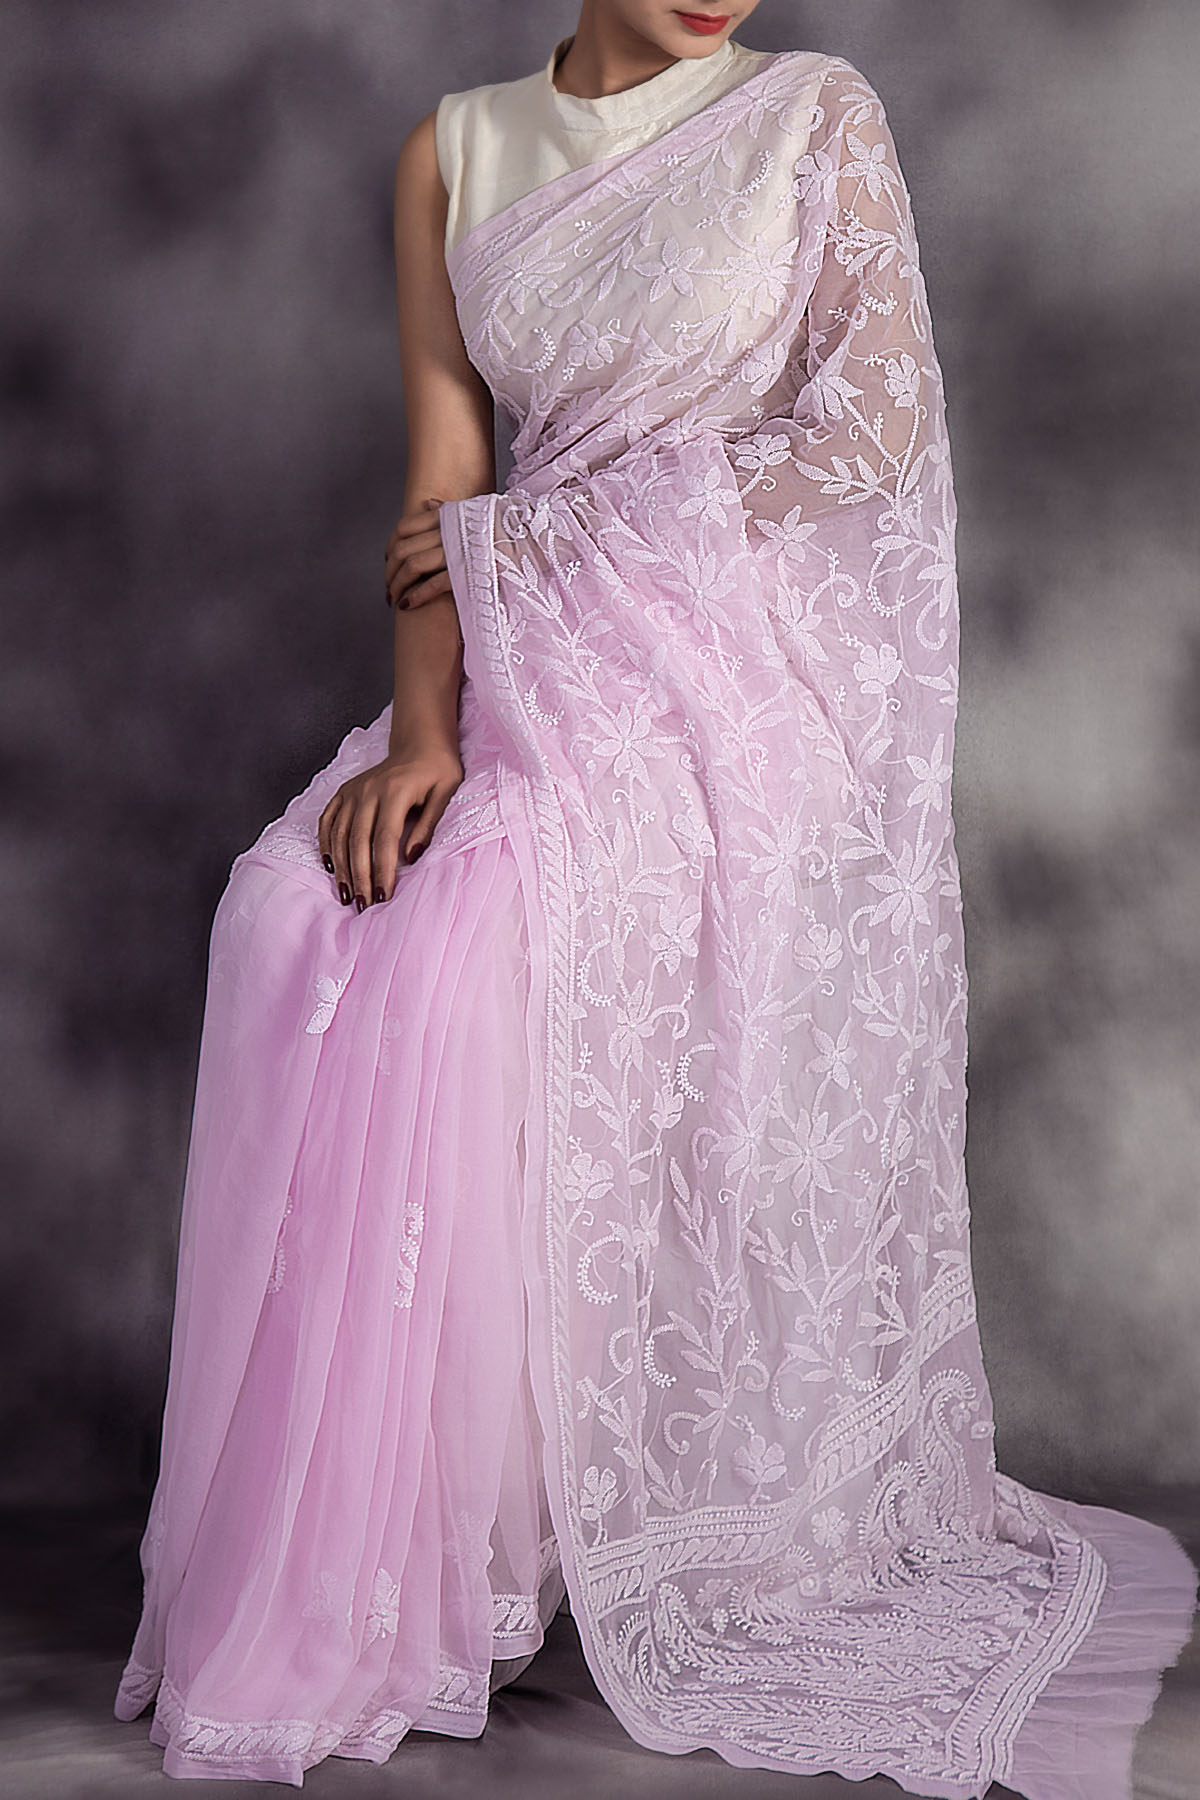 Powderpink Colour Hand Embroidered Half Jaal Lucknowi Chikankari Designer Saree (With Blouse - Georgette) GA250592